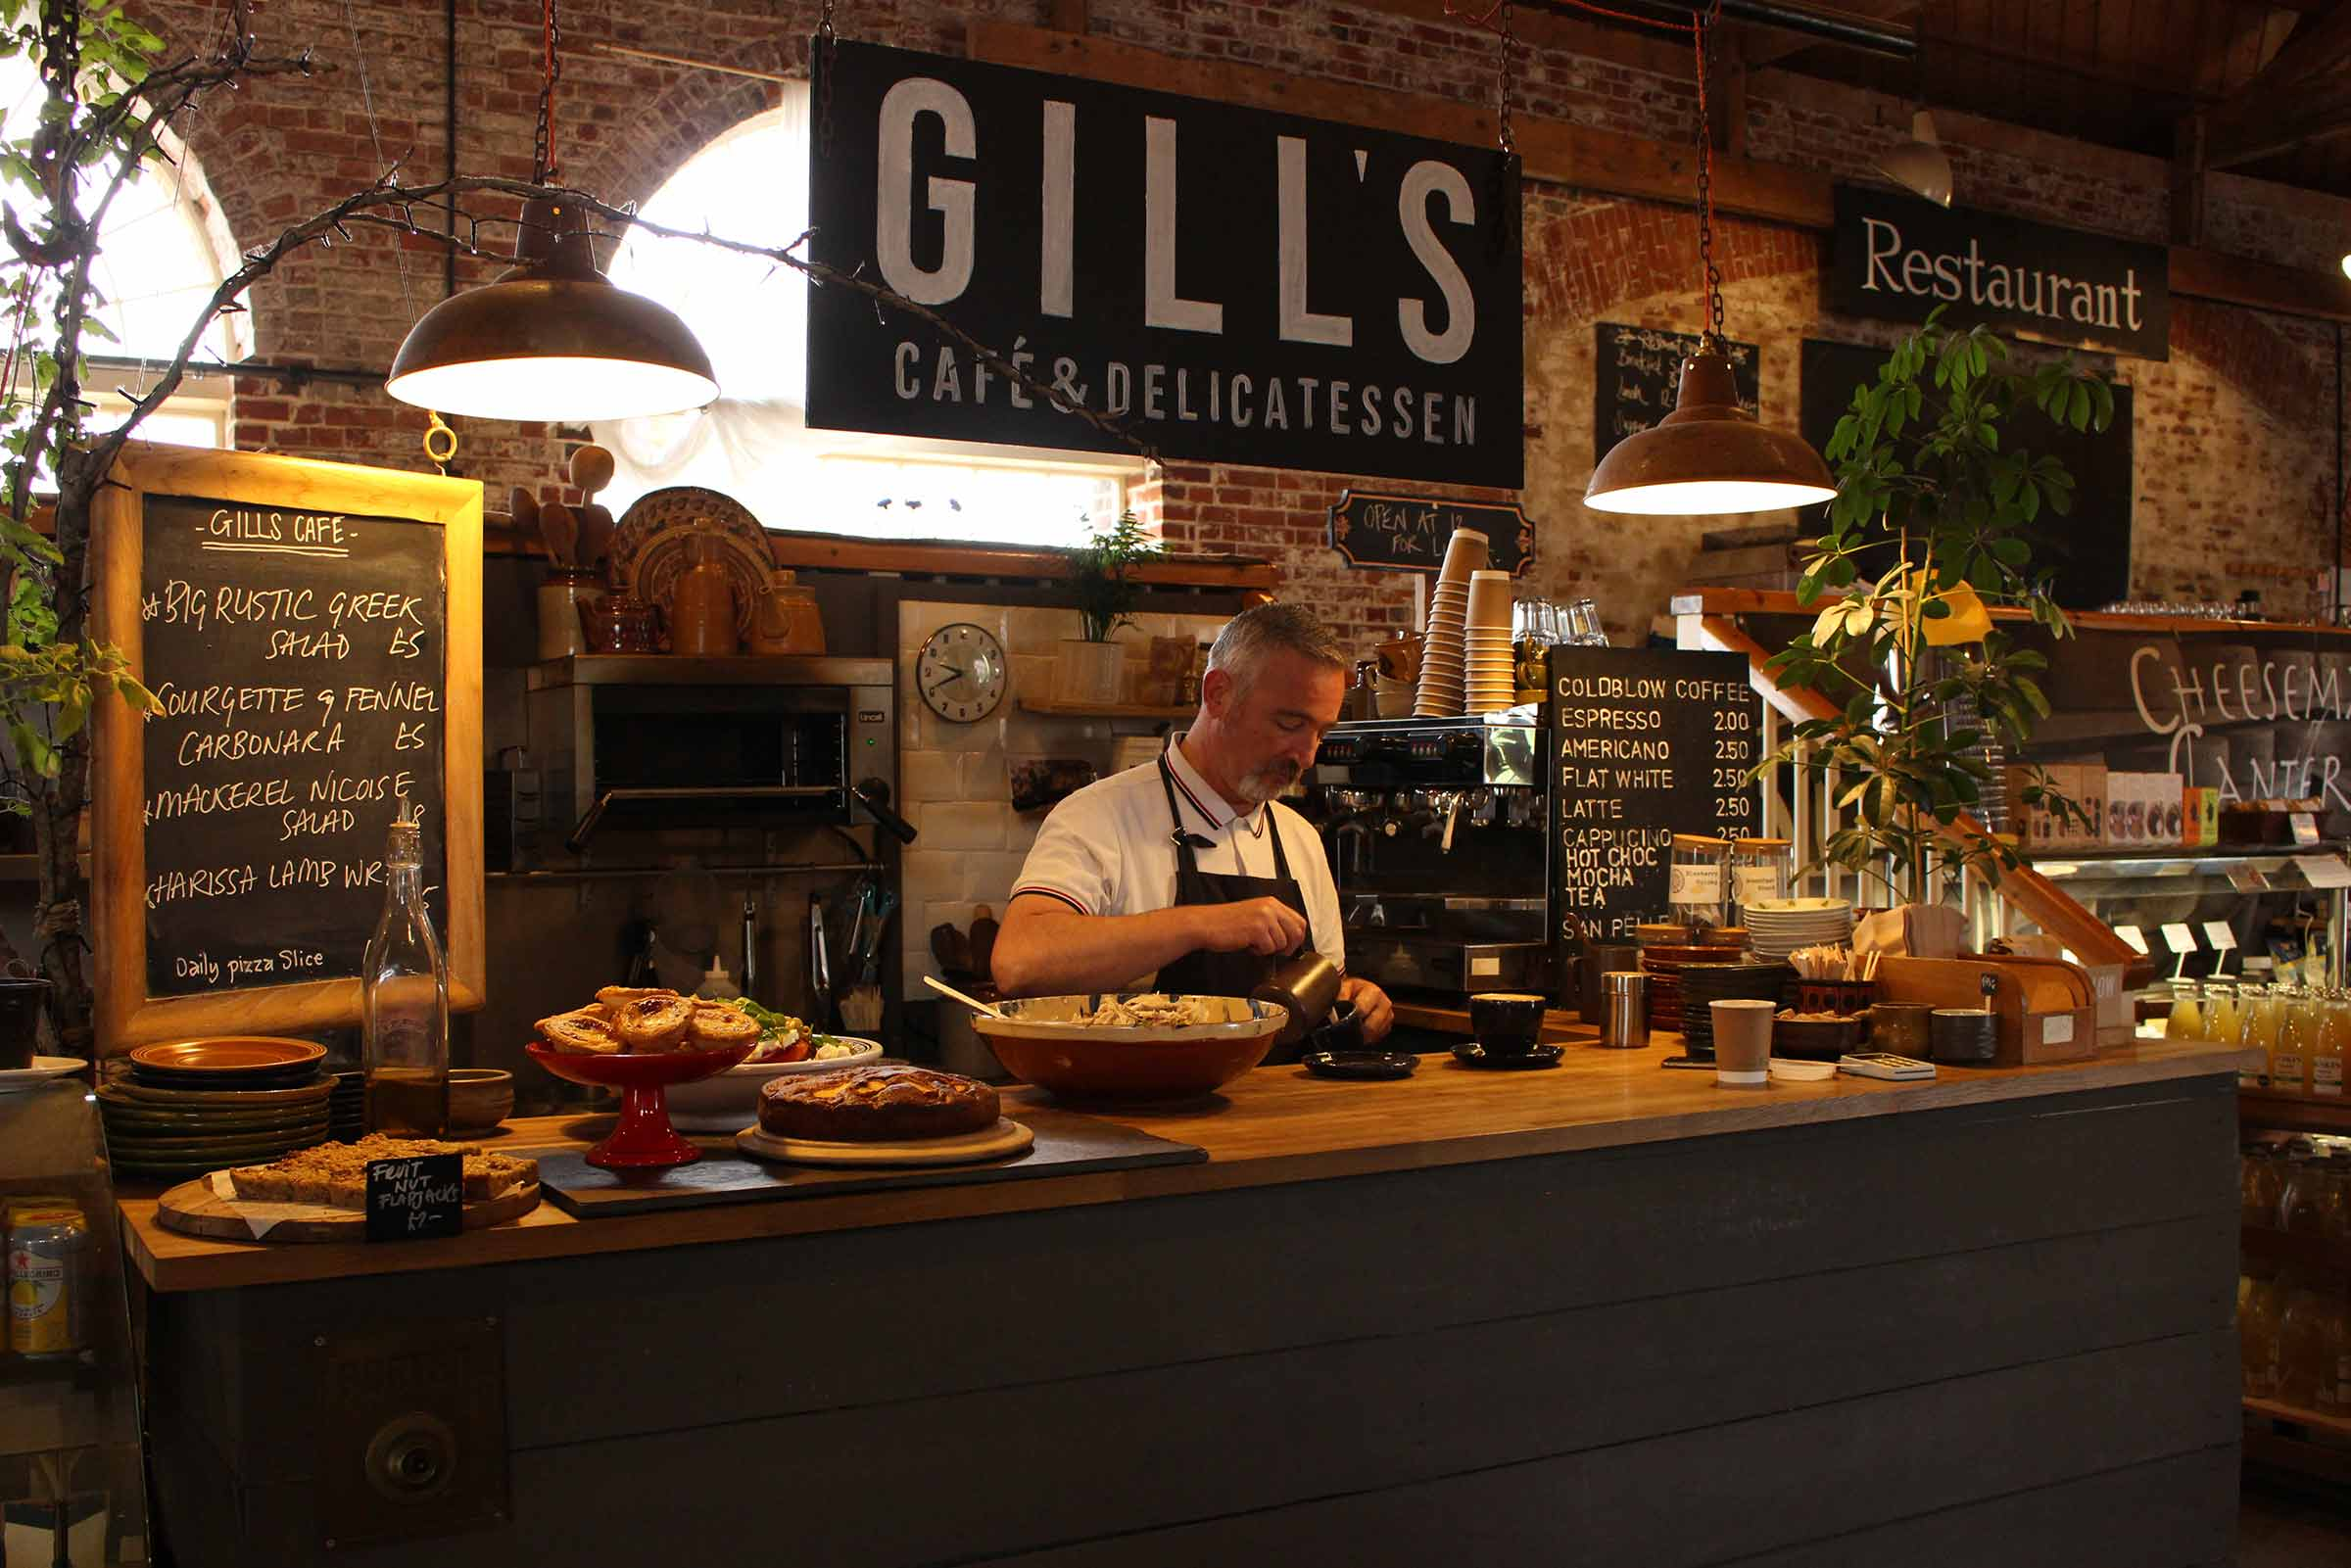 Gills cafe and delicatessen